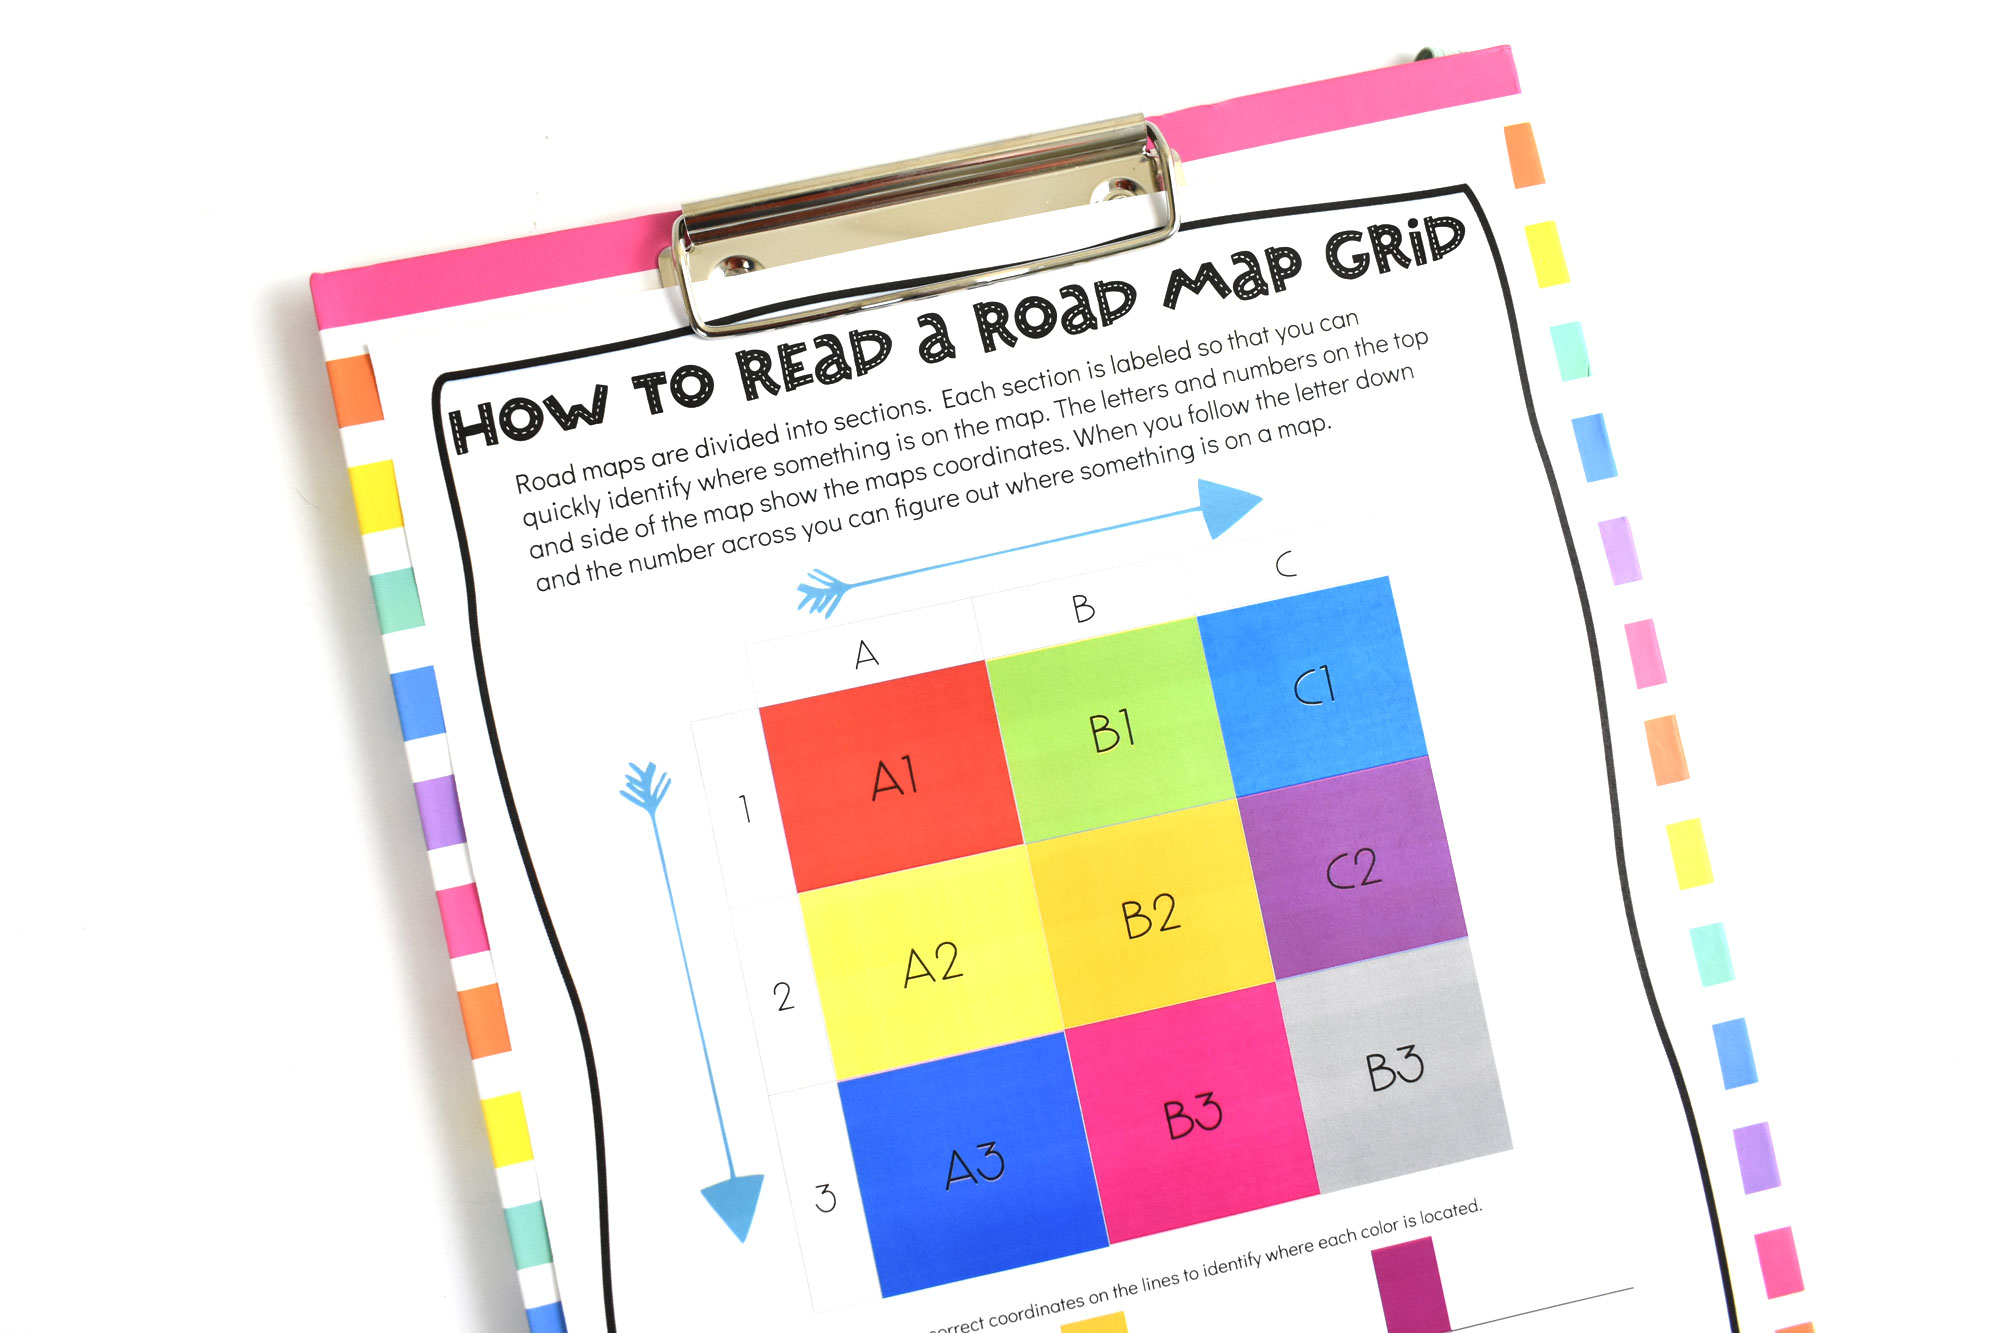 How to Read a Road Map Free Printable | HolidayPrintables.net #printables #roadmaps #geography #educationprintables #freeprintables #homeschoolprintables #weloveprintables #holidayprintables #stem